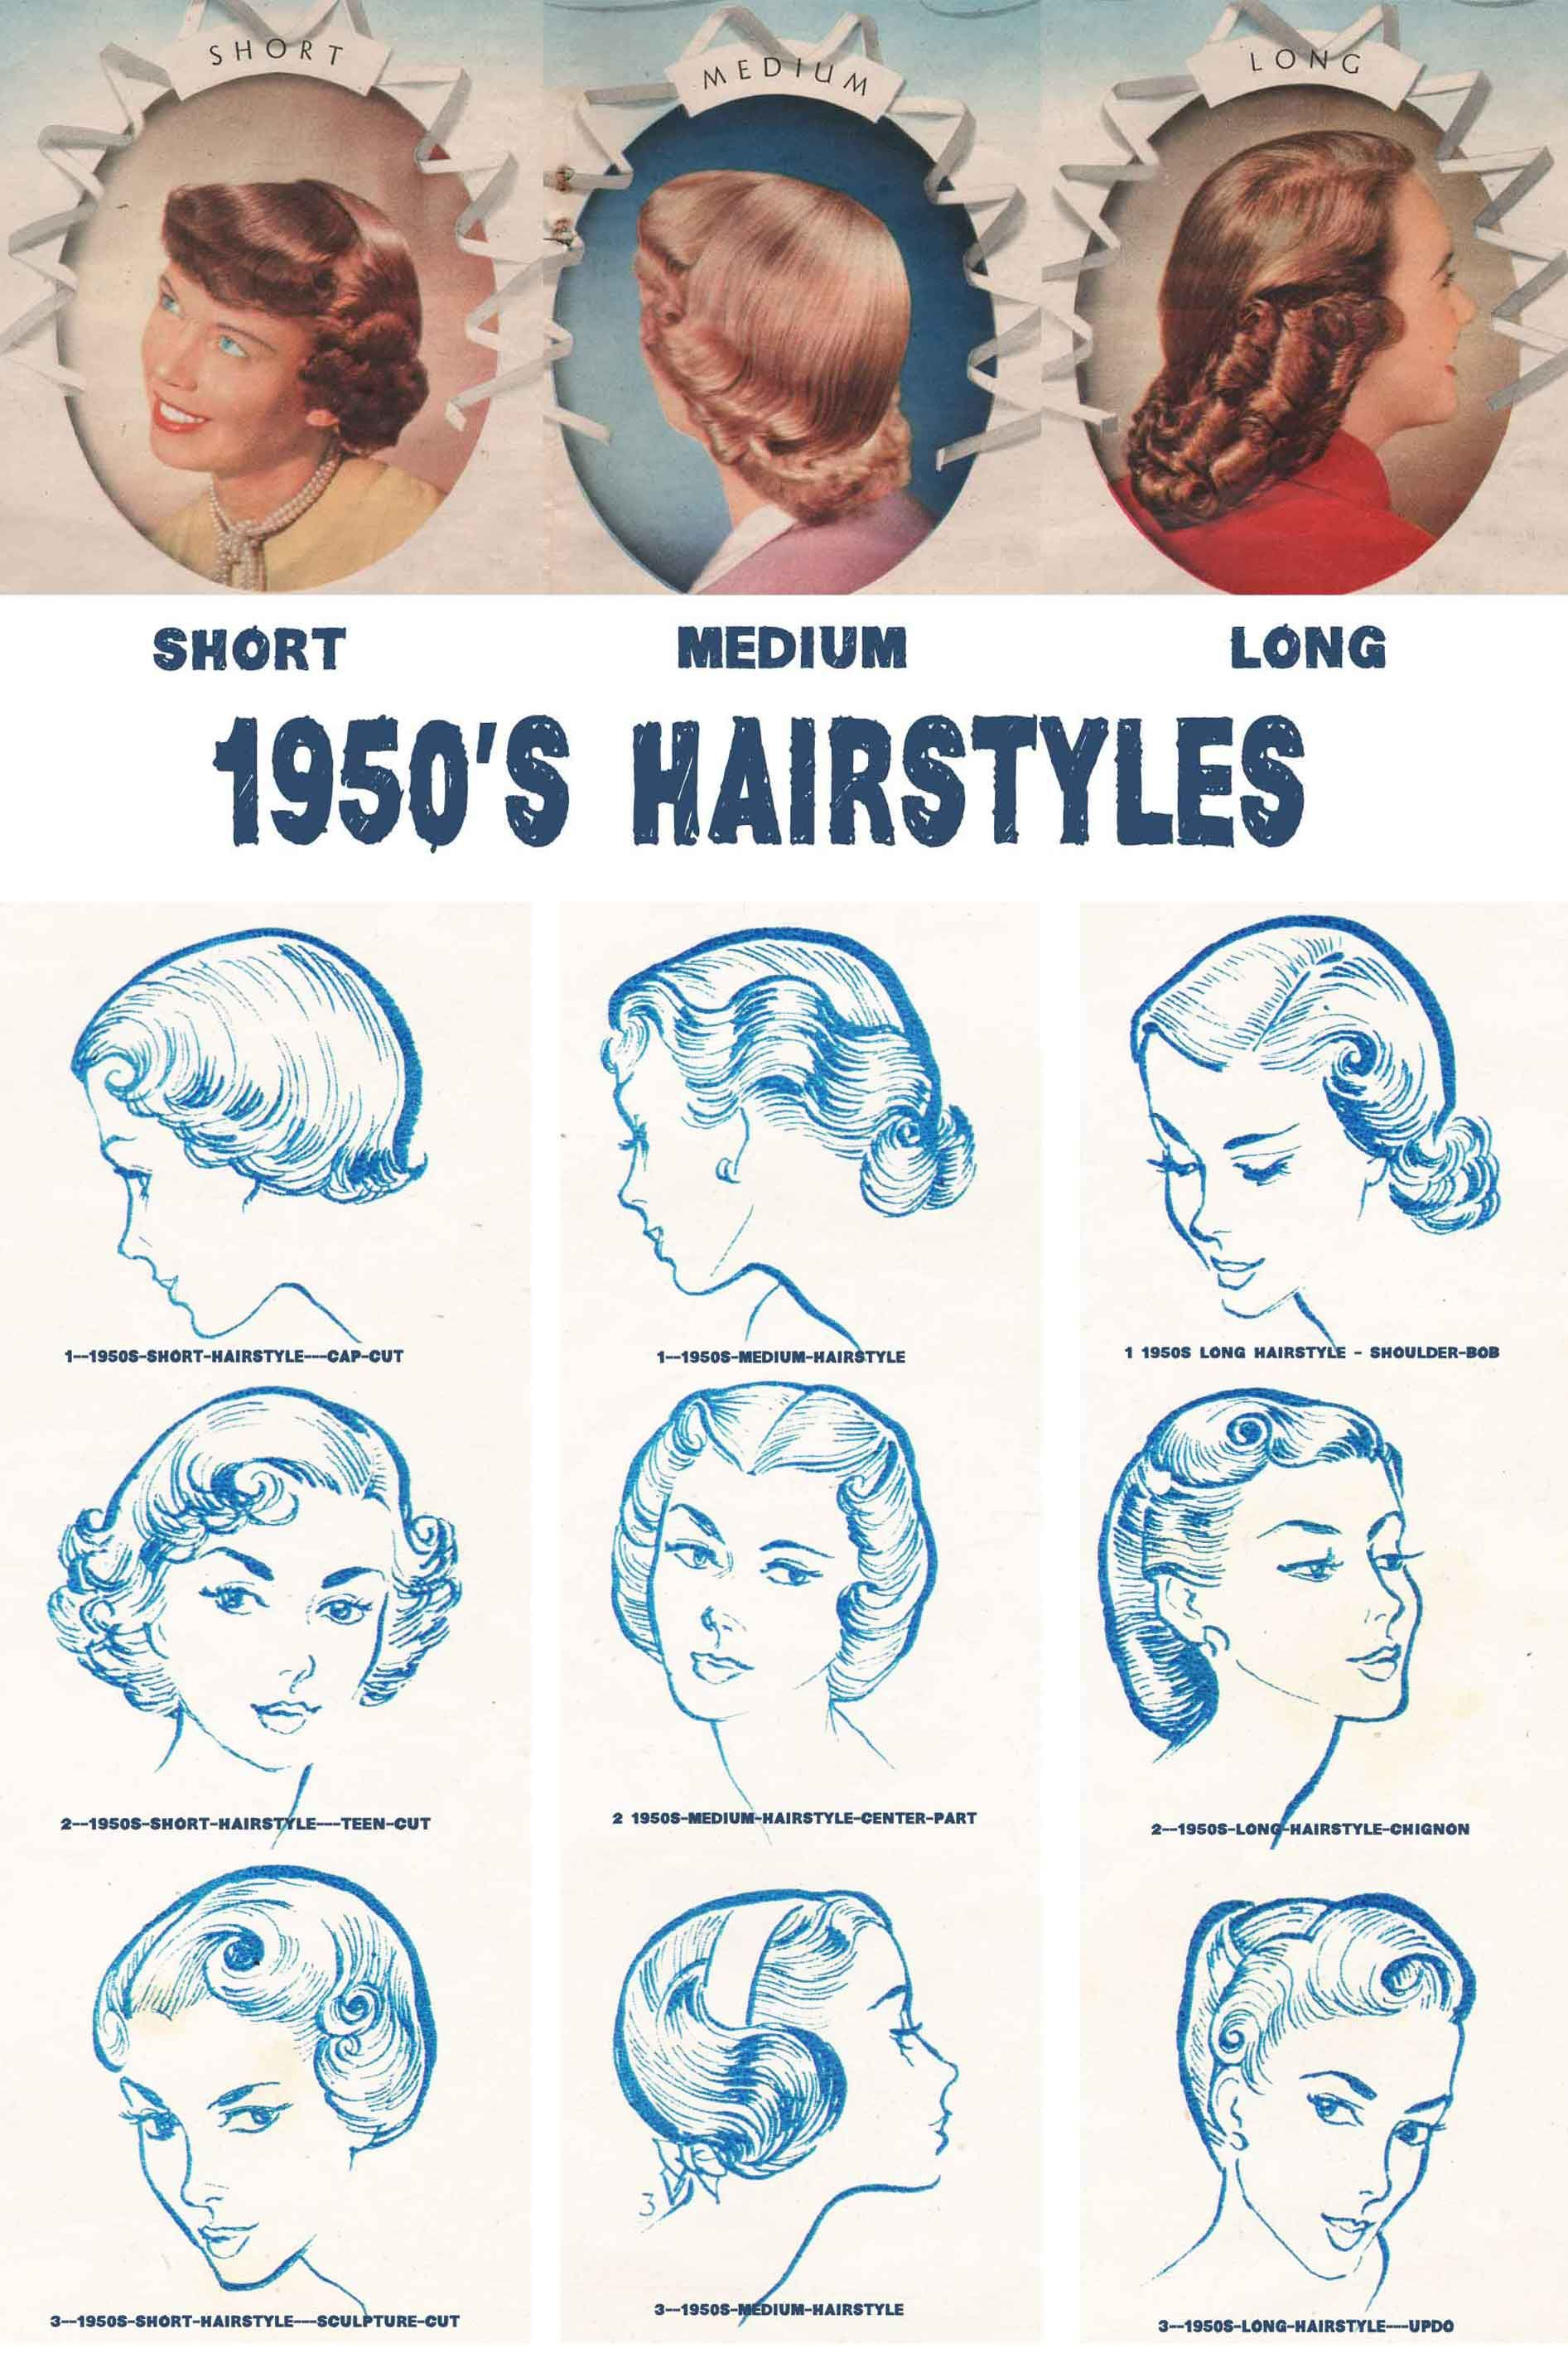 1950s Hairstyles Chart For Your Hair Length Glamour Daze 1950s Hairstyles Retro Hairstyles Hair Lengths